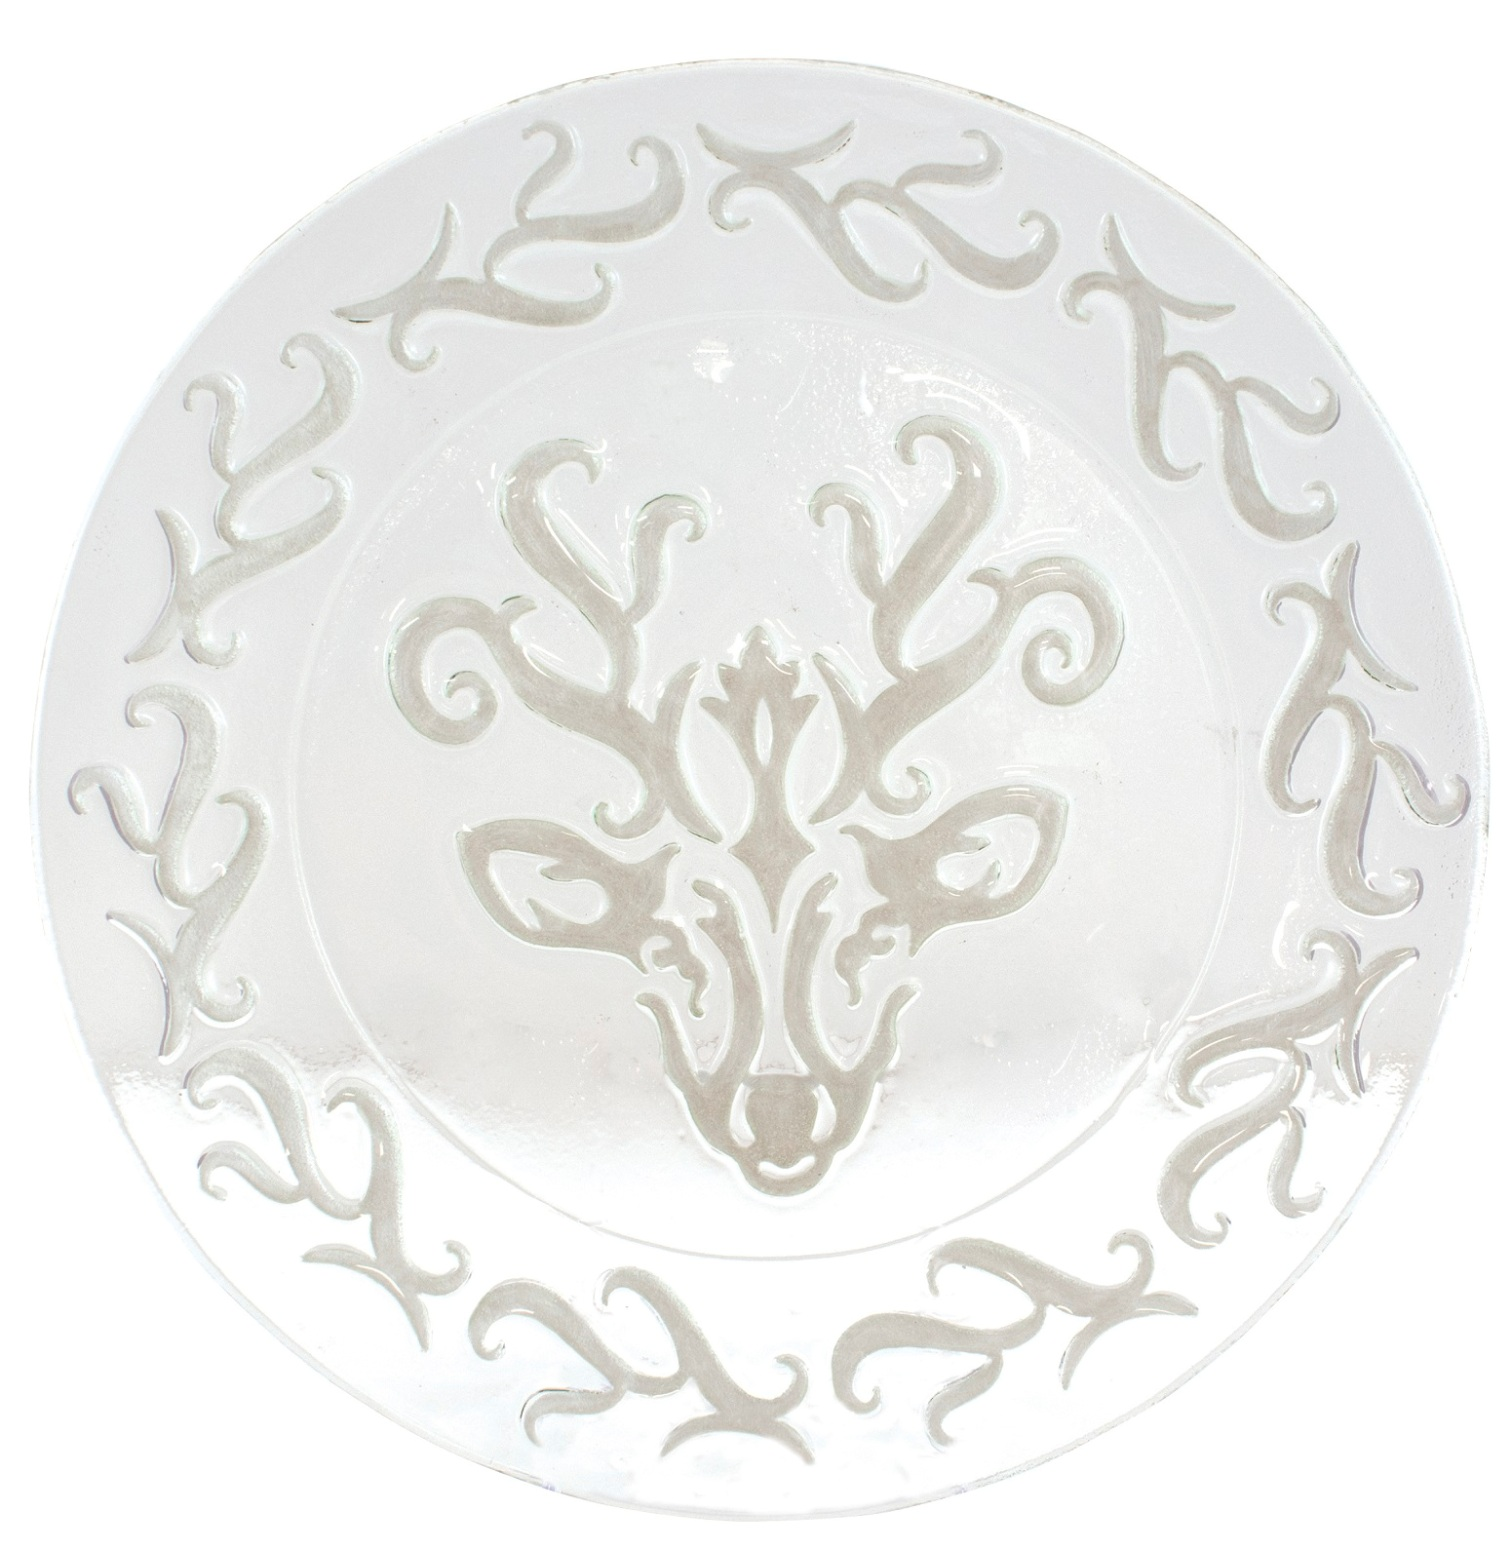 Chalet Reindeer Christmas Holiday Embossed Glass 13 Inch Plate Serving Platter